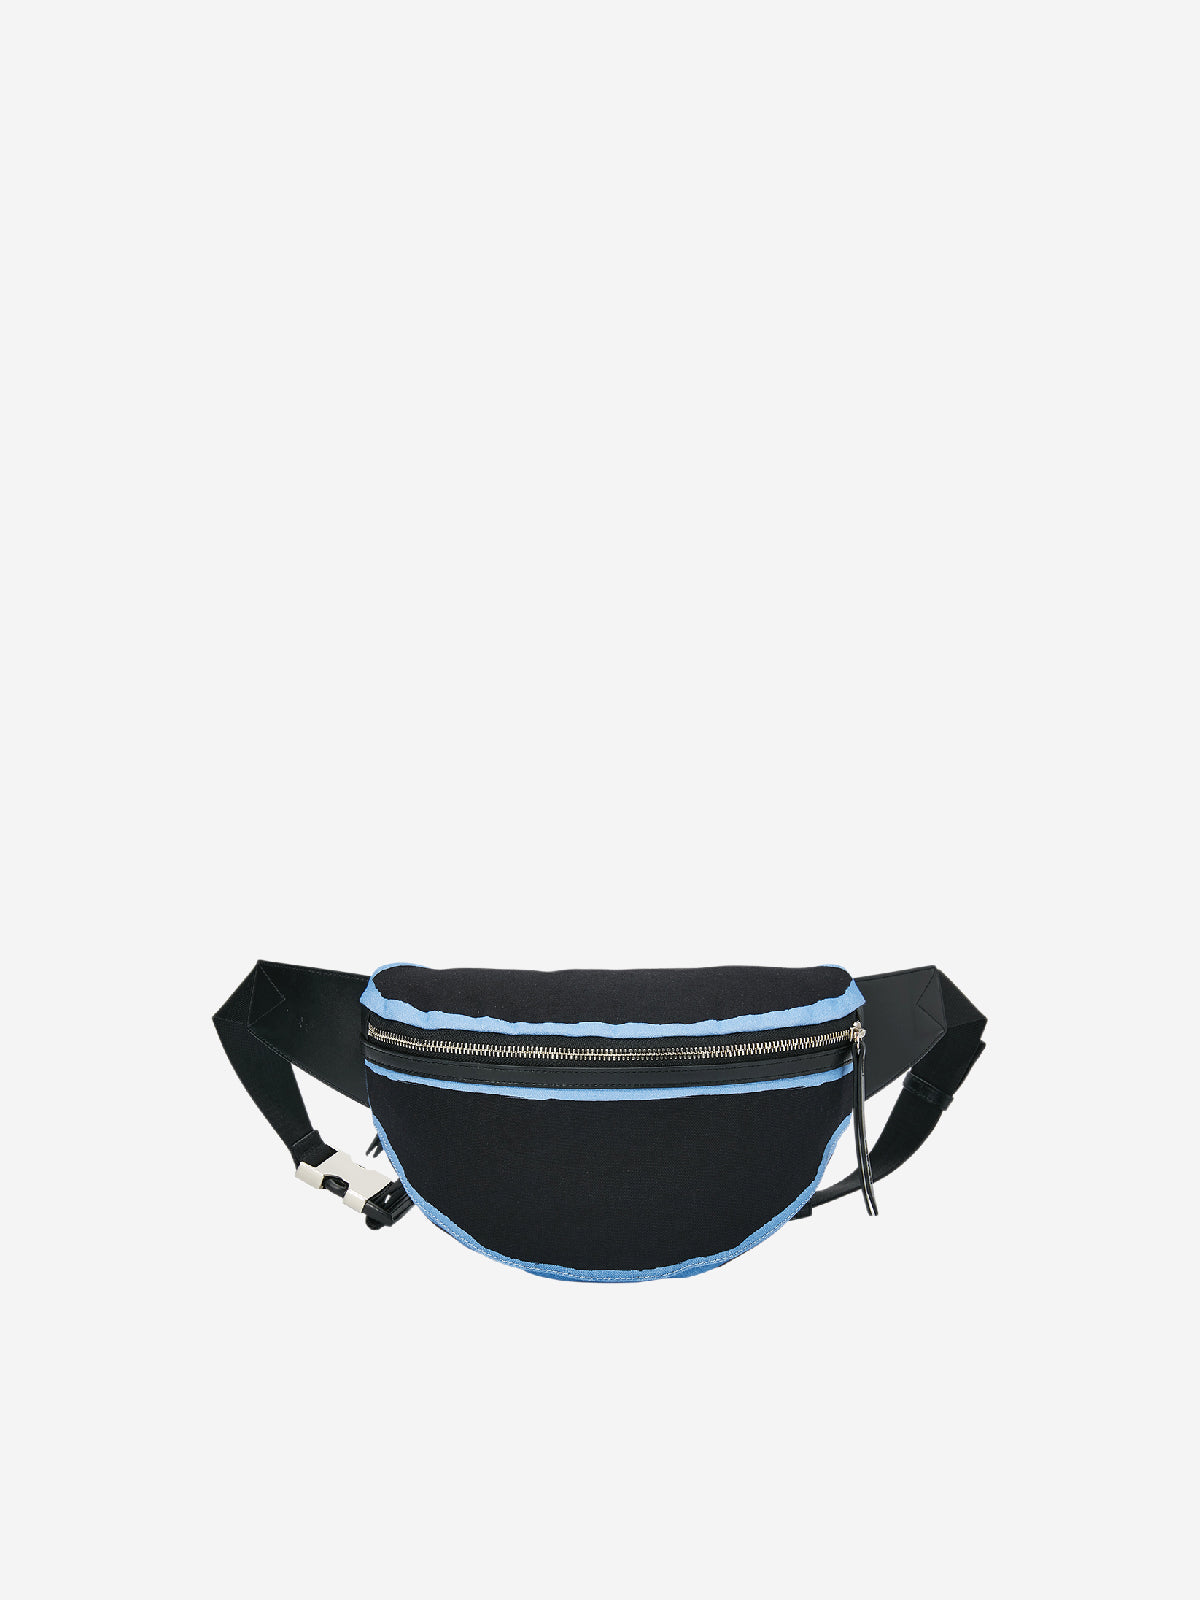 Painted Edge Bum Bag